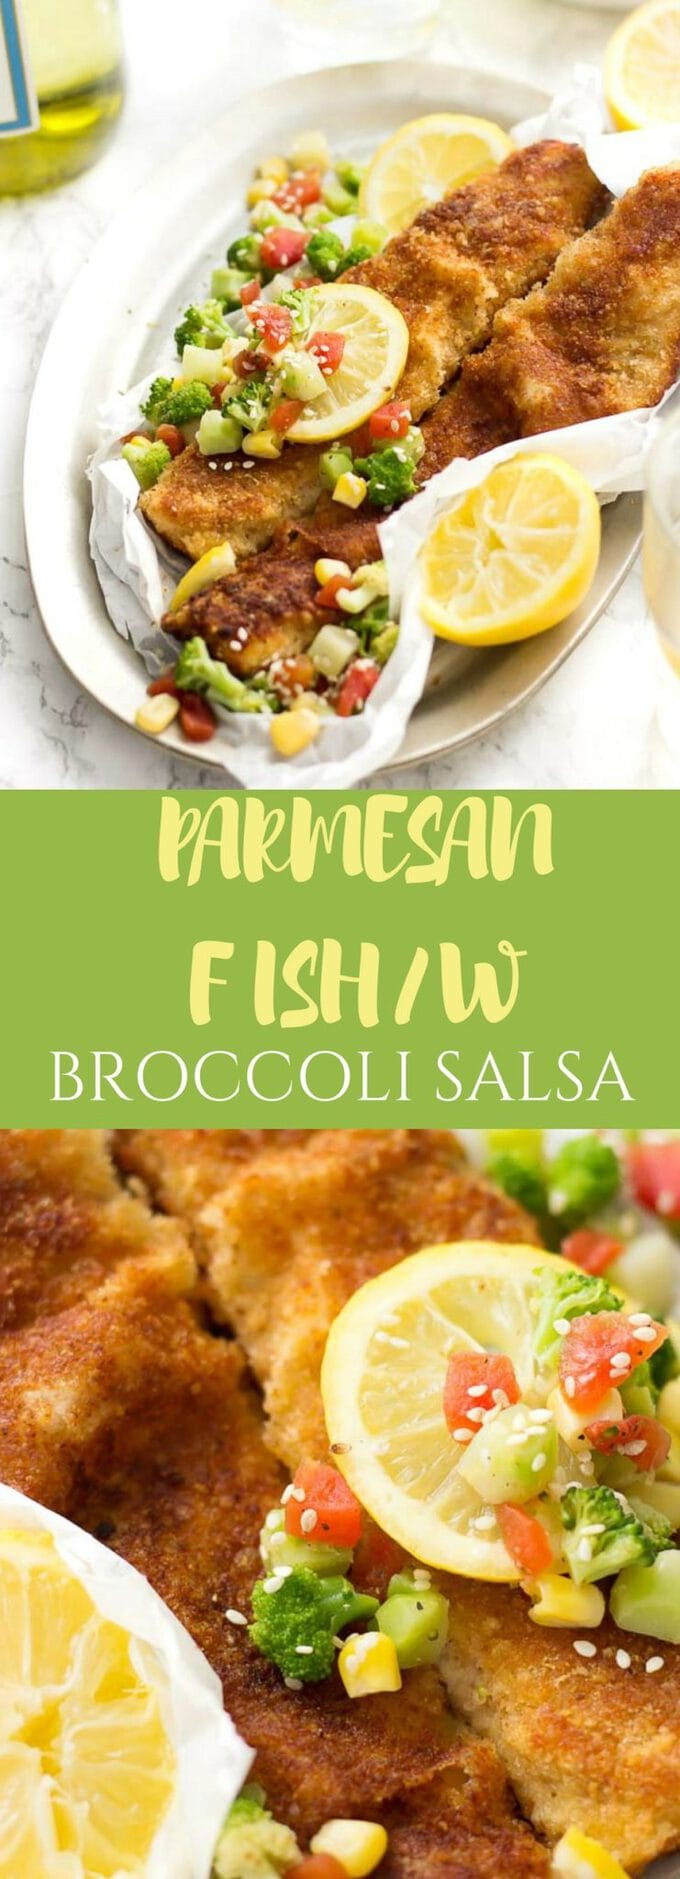 Parmesan Fish With Broccoli, Corn and Tomato Salsa